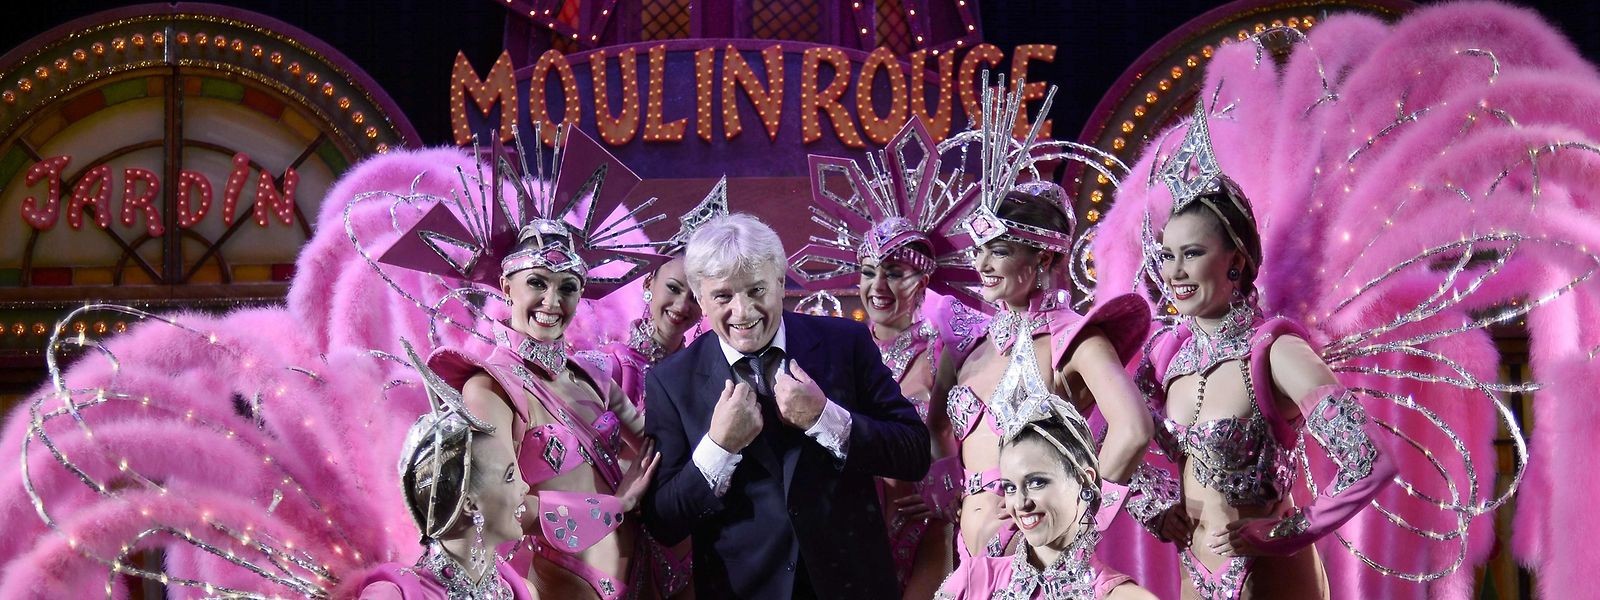 (FILES) This file photo taken on October 1, 2014 shows Jean-Jacques Clerico, owner and great great son of the founder of the Moulin Rouge posing with dancers at the Moulin Rouge cabaret in Paris. - French oldest cabaret, the Moulin Rouge, will celebrate its 130th anniversary on October 6, 2019. (Photo by STEPHANE DE SAKUTIN / AFP)